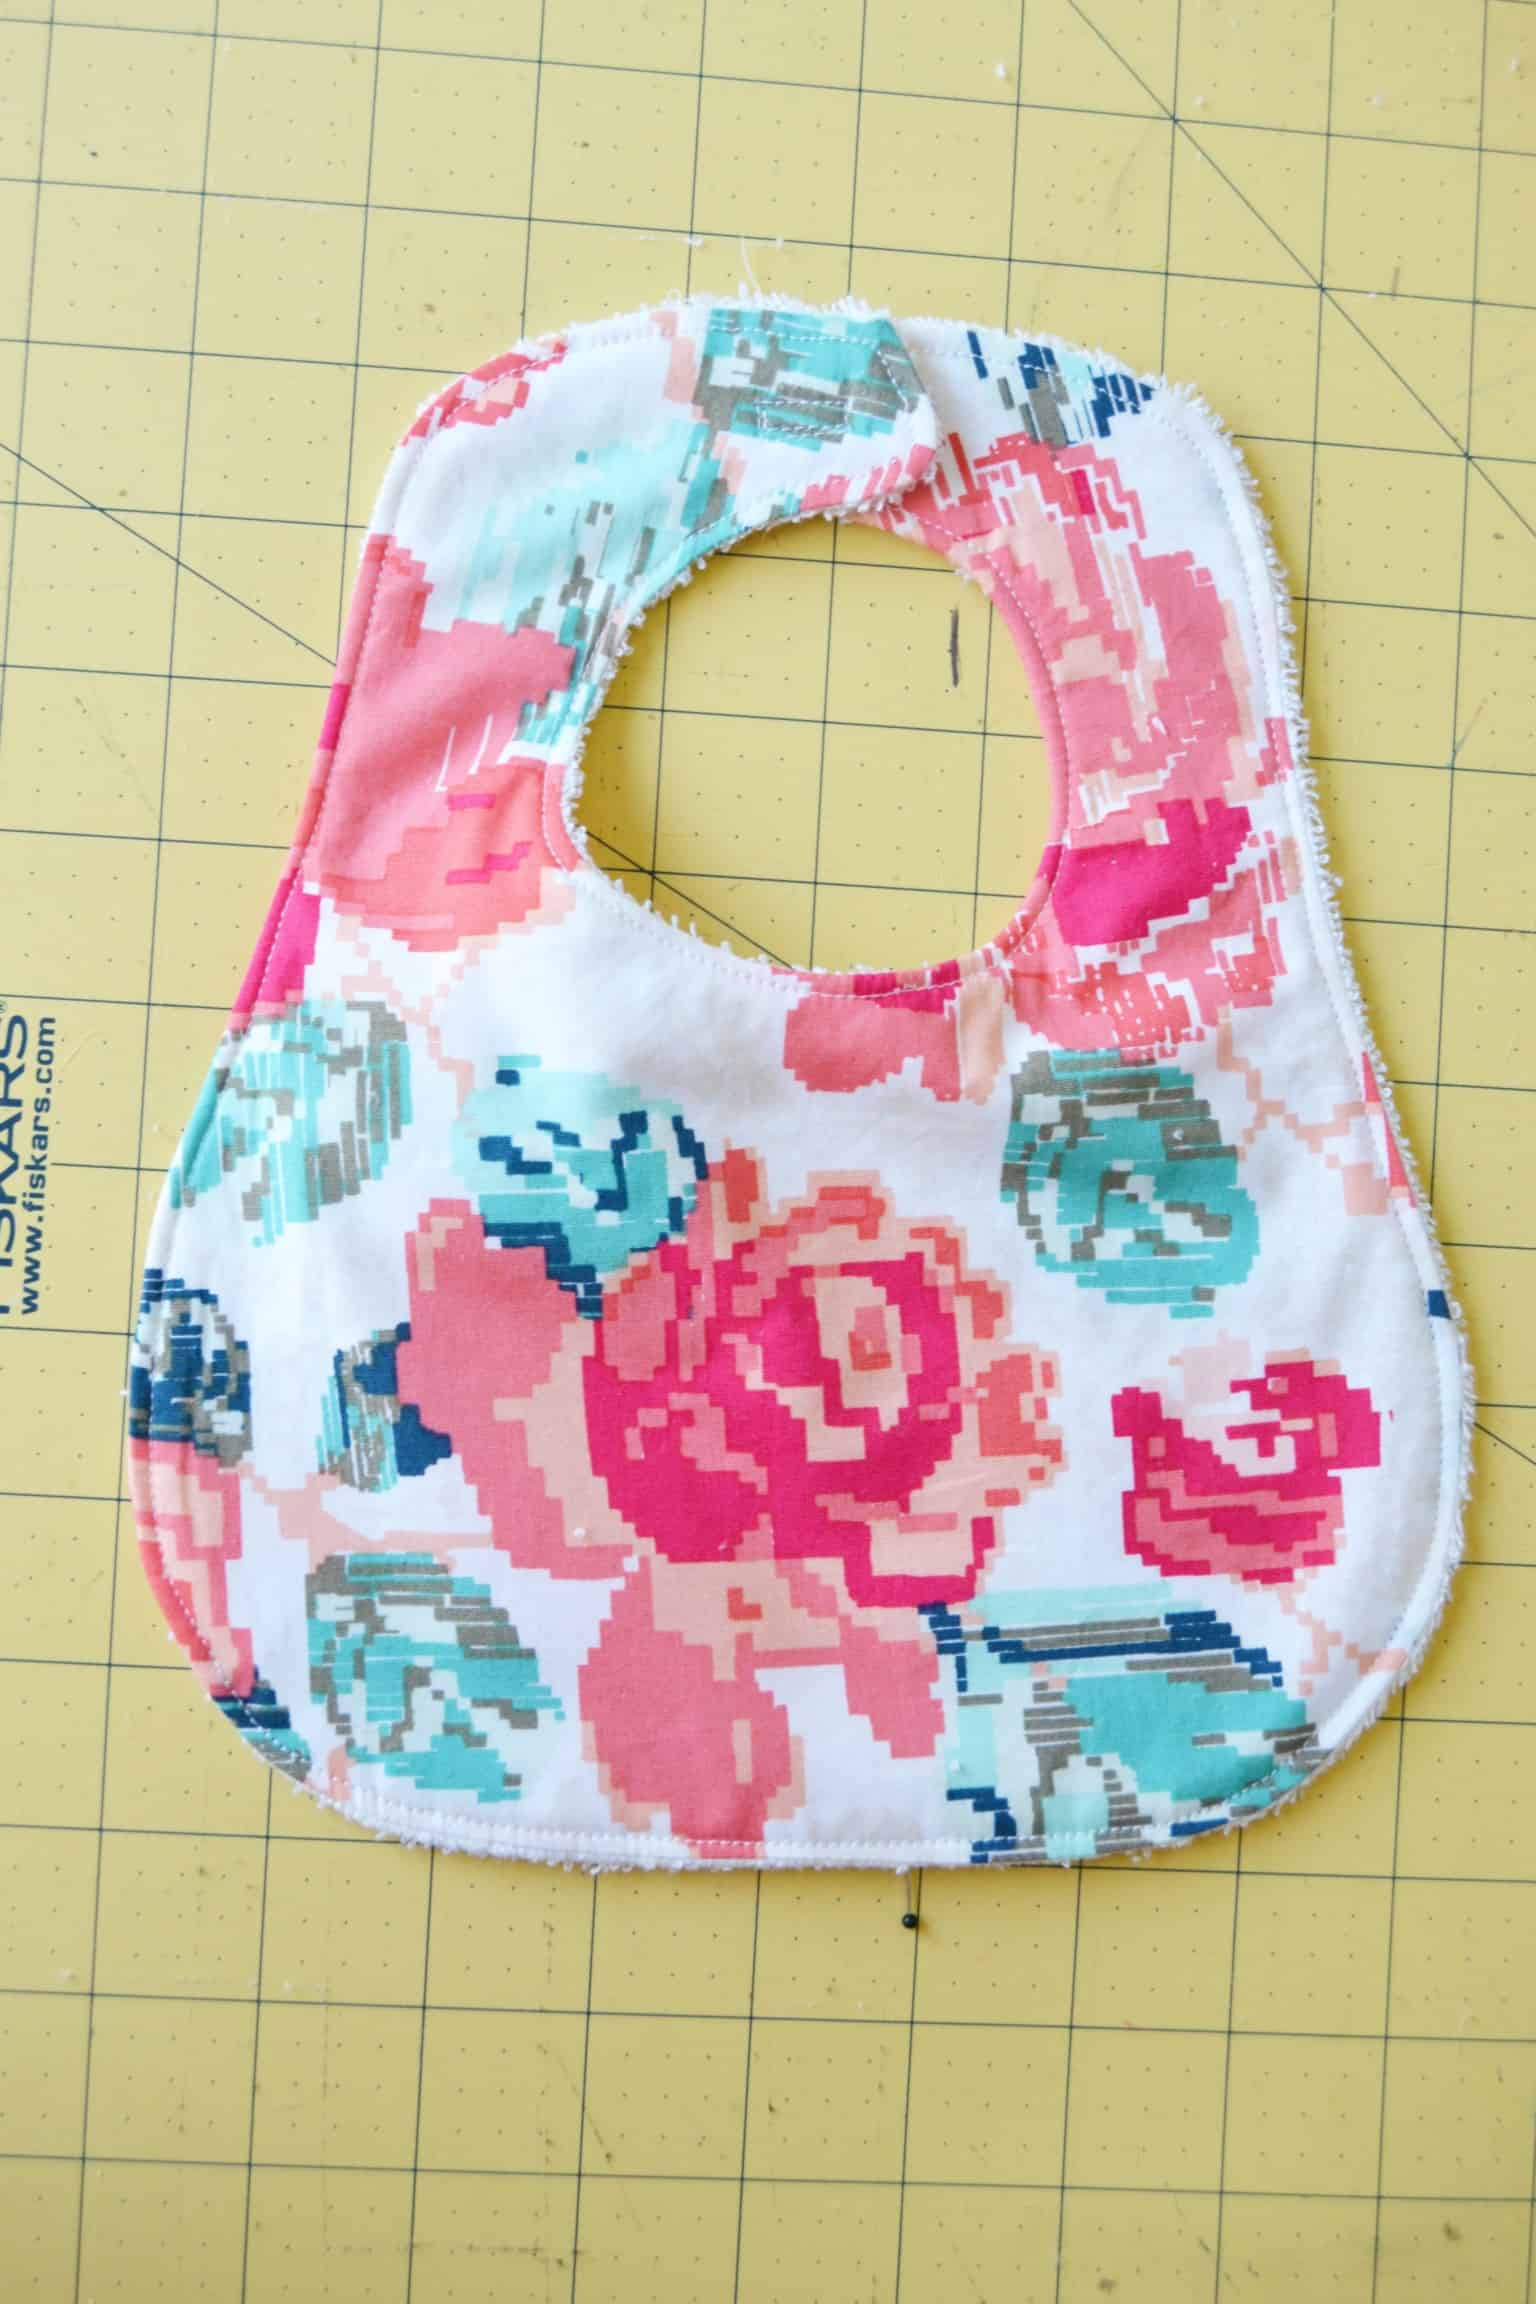 the finished bib showing where the velcro was sewn onto the straps